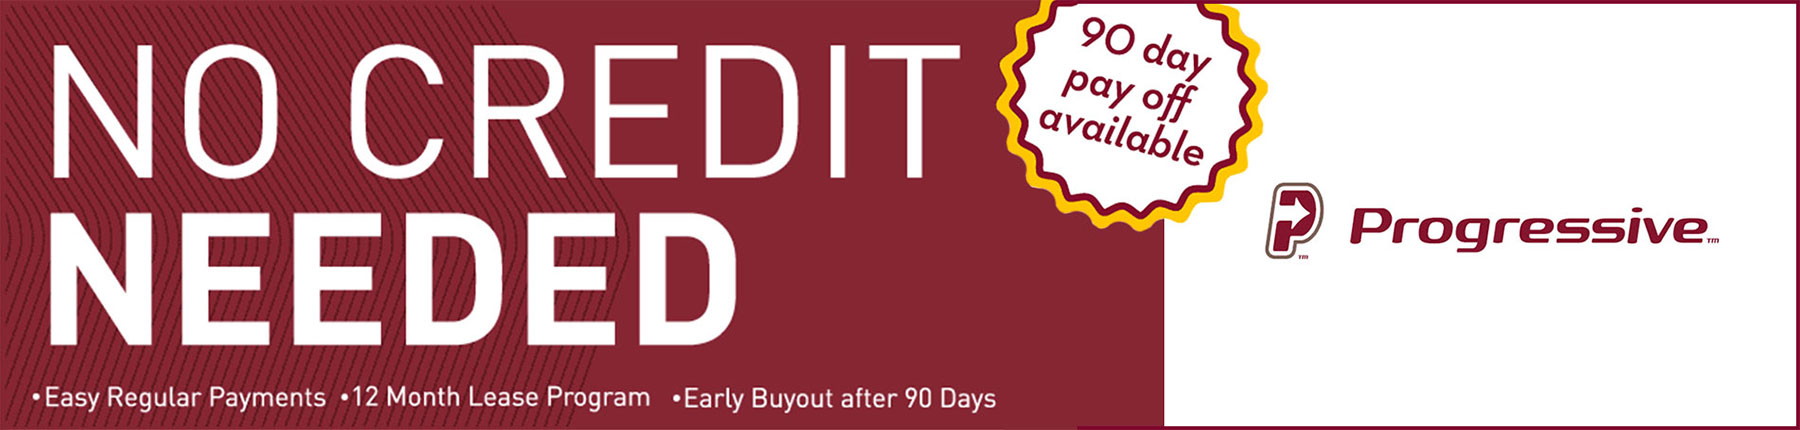 No Credit Needed! 90 Day Payment Option!